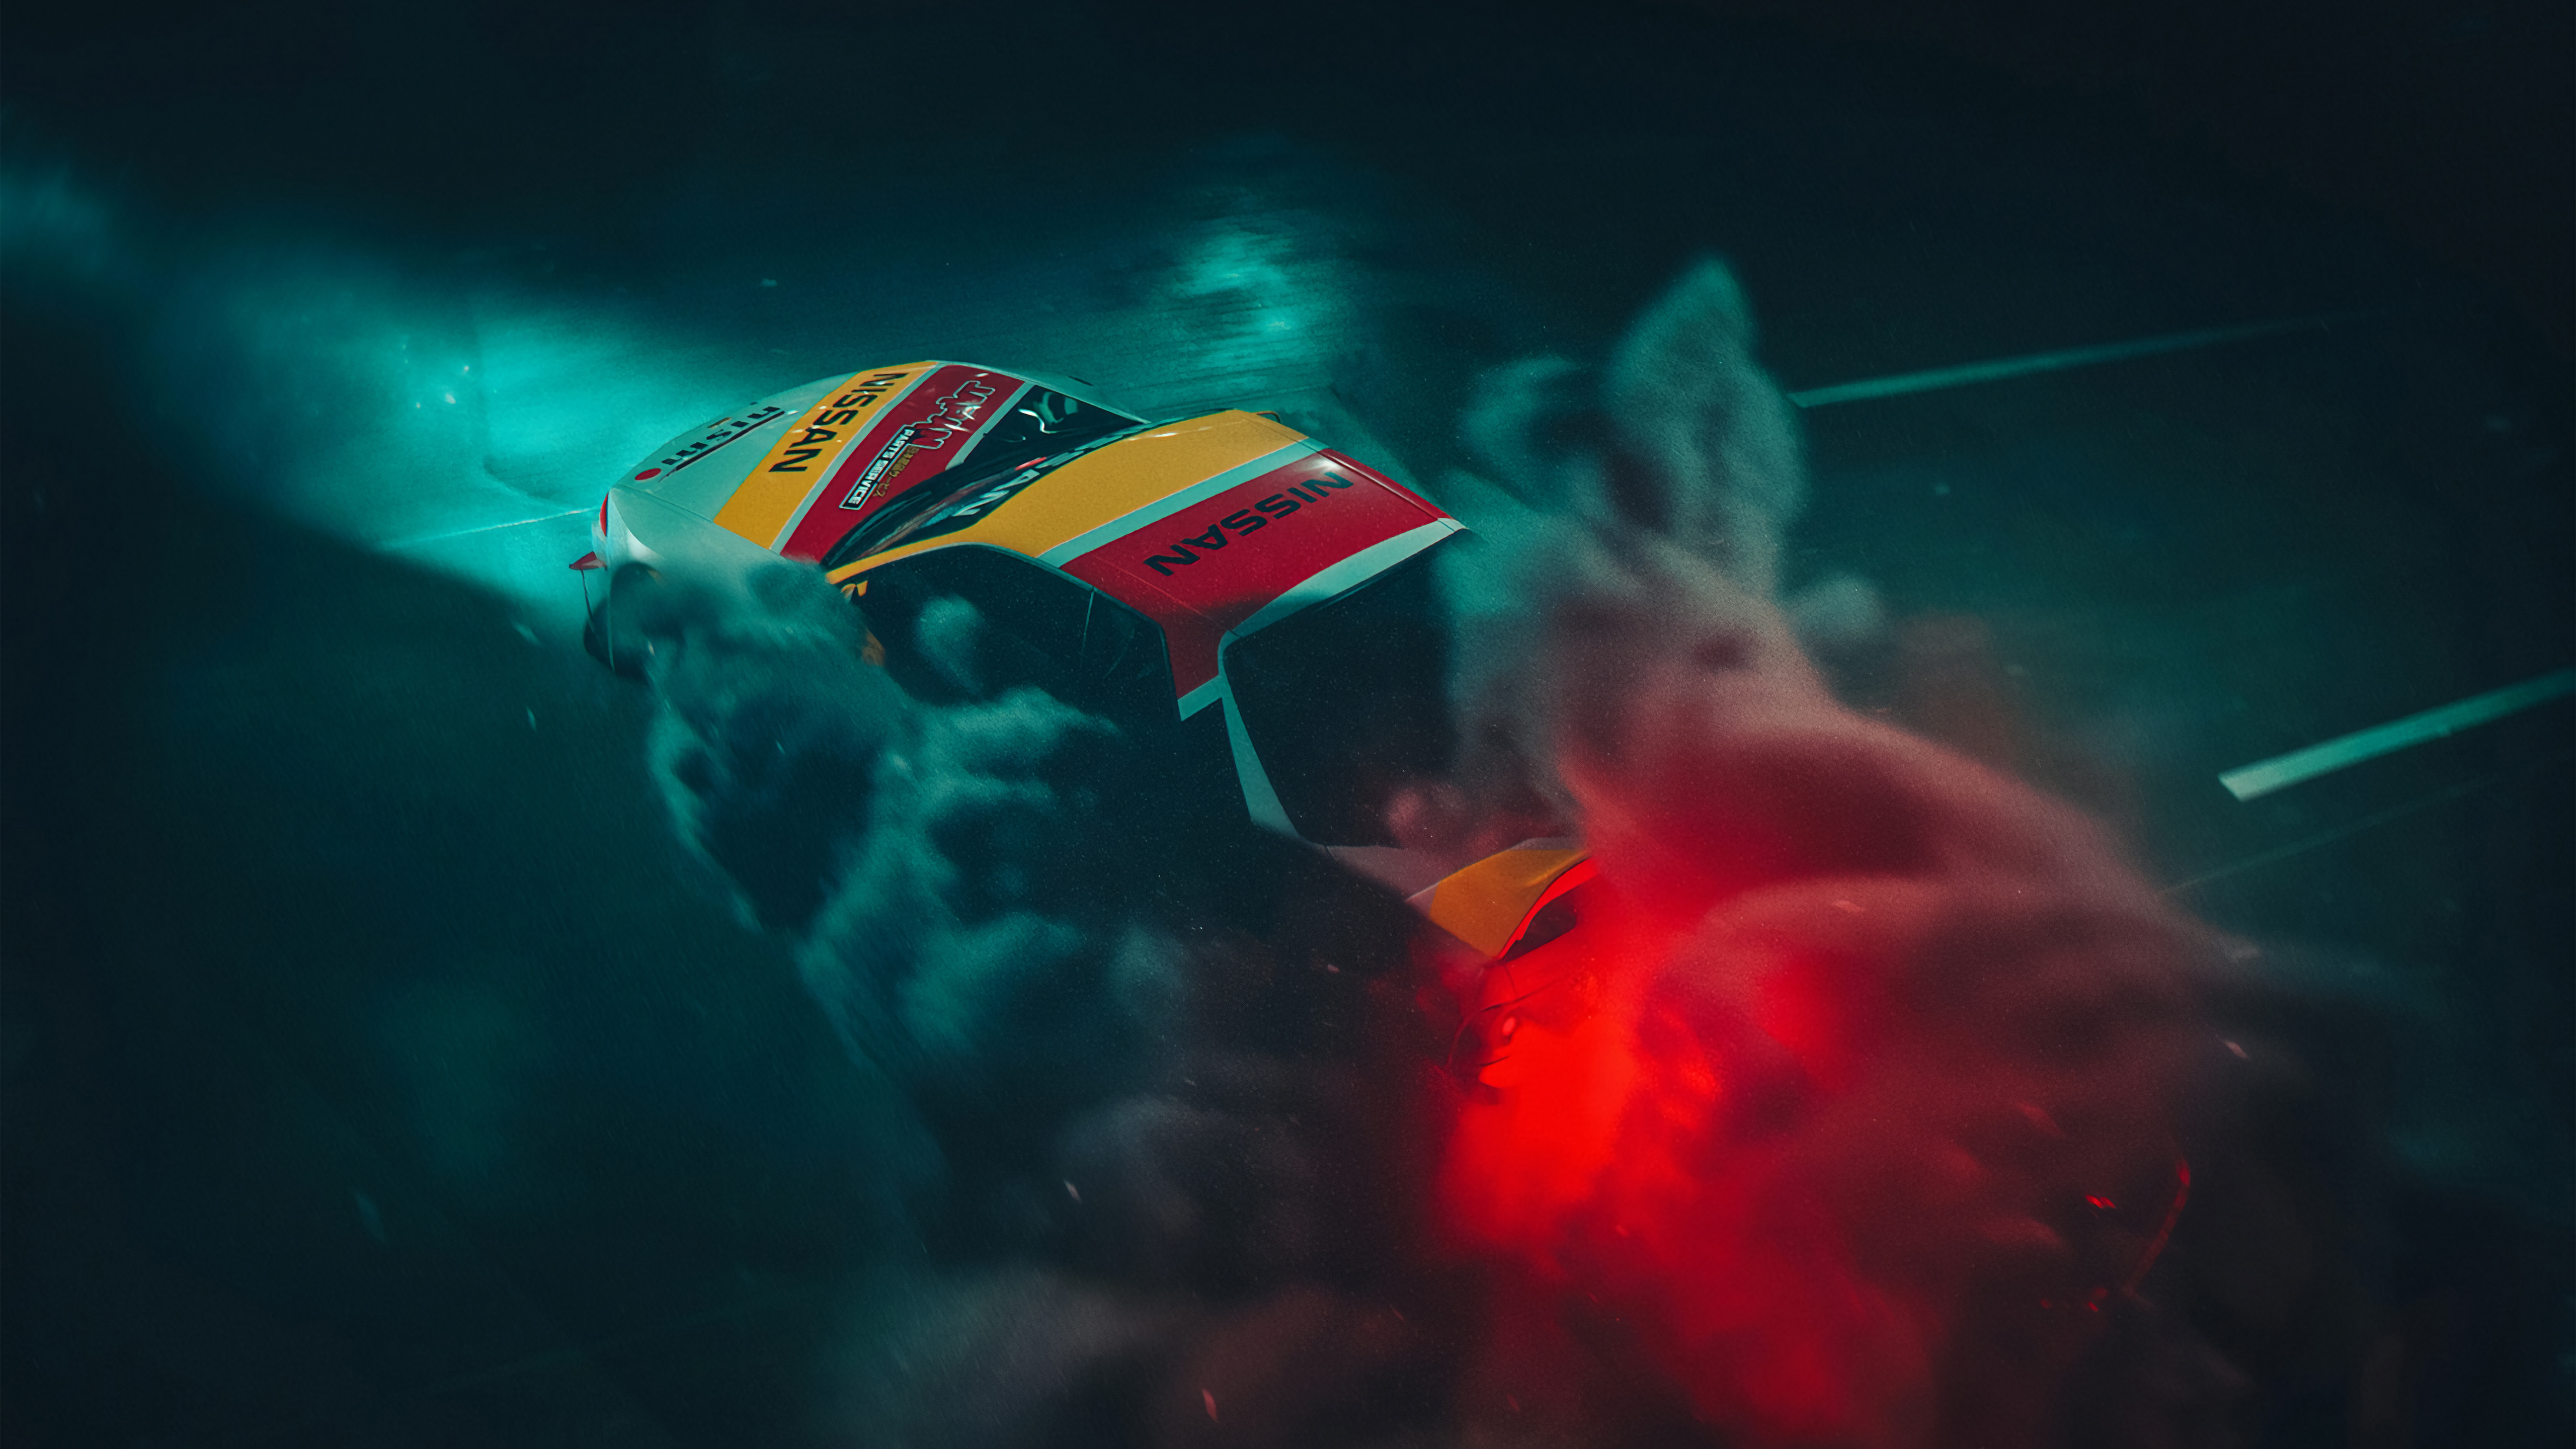 Car Drift Smoke 5k Hd Cars 4k Wallpapers Images Backgrounds